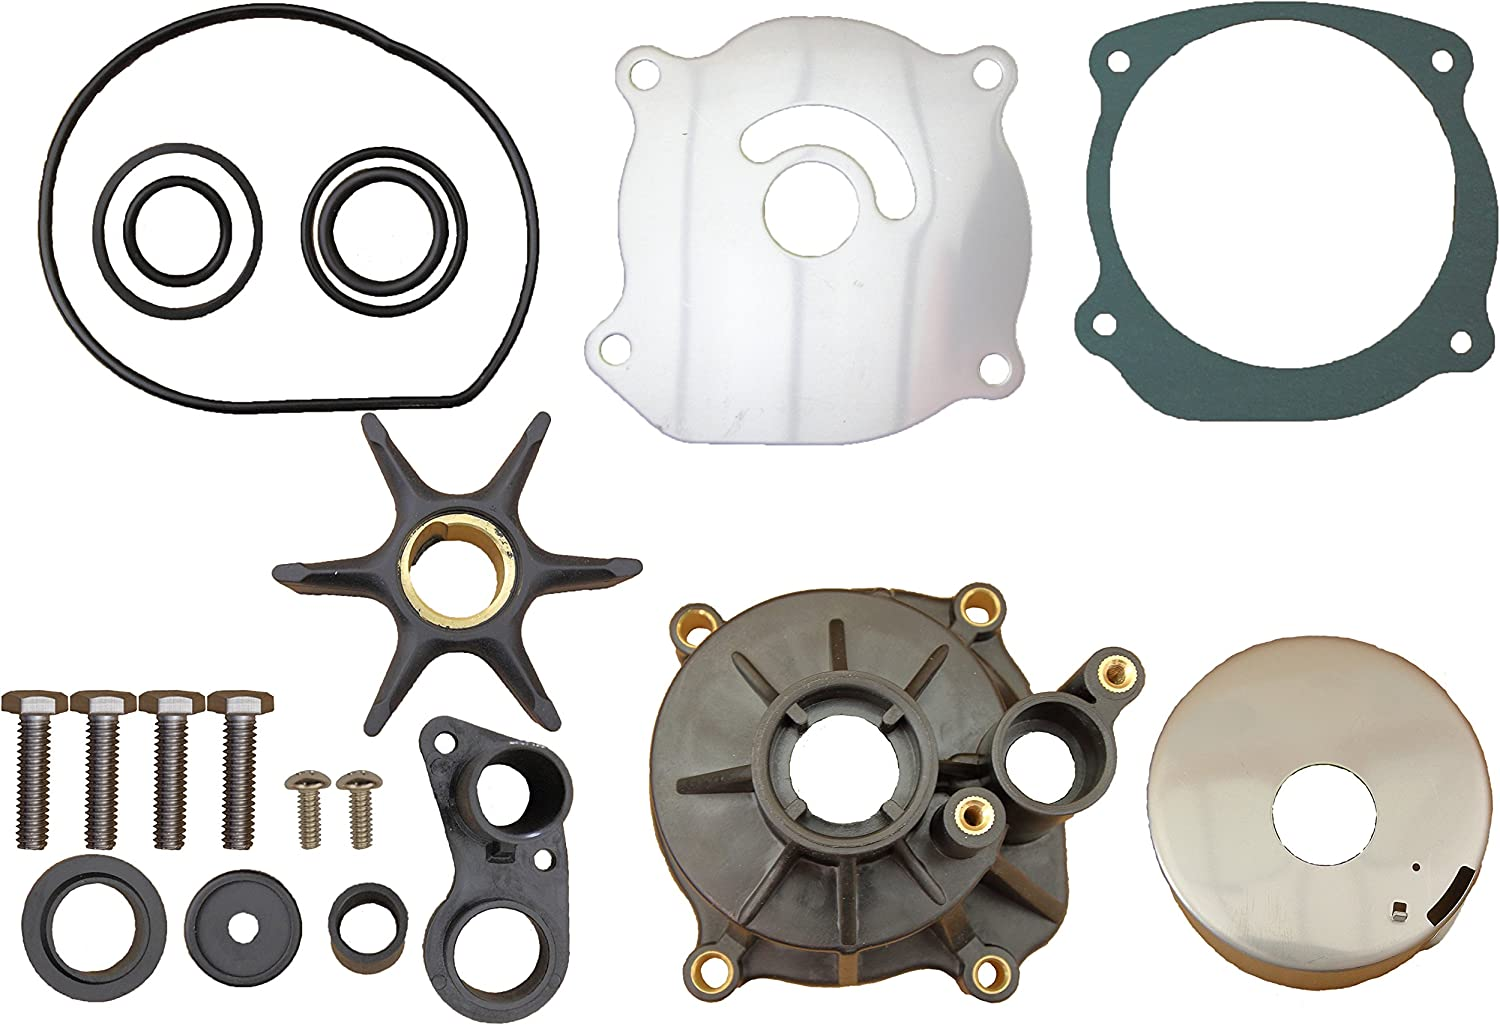 Evinrude Johnson Outboard 85 88 90 115 140 CROSSFLOW V4 Replaces 5001594 Water Pump Kit